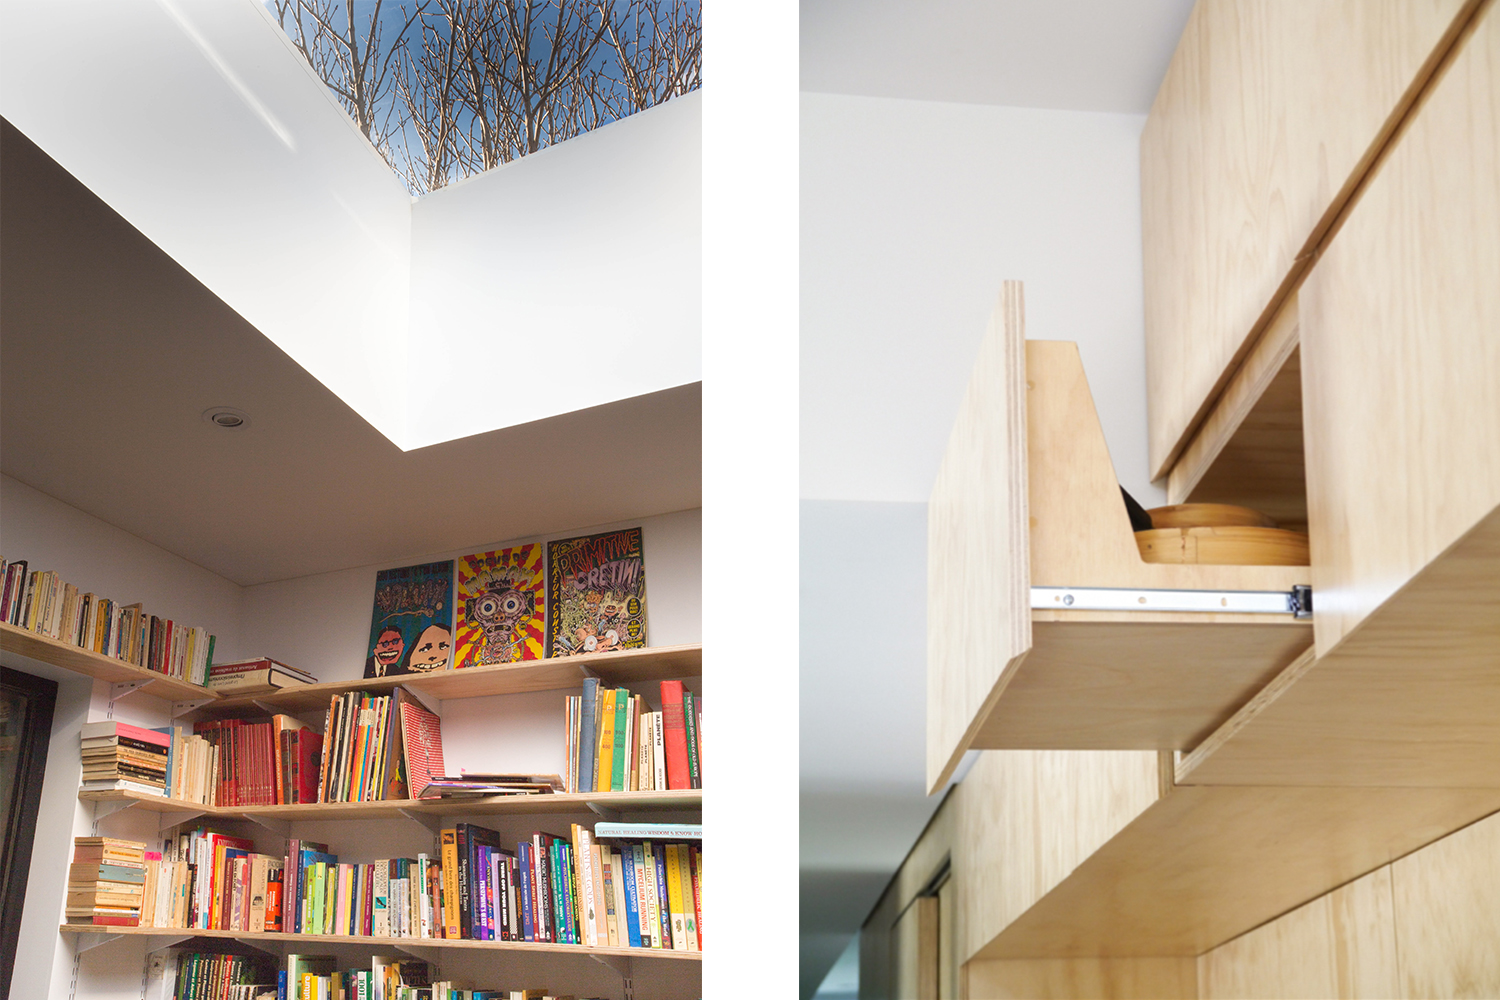 Detail of the library made to measure under the new skylight. System of adjustable racks and shelves in plywood. Another drawer detail made by cabinet maker in height.